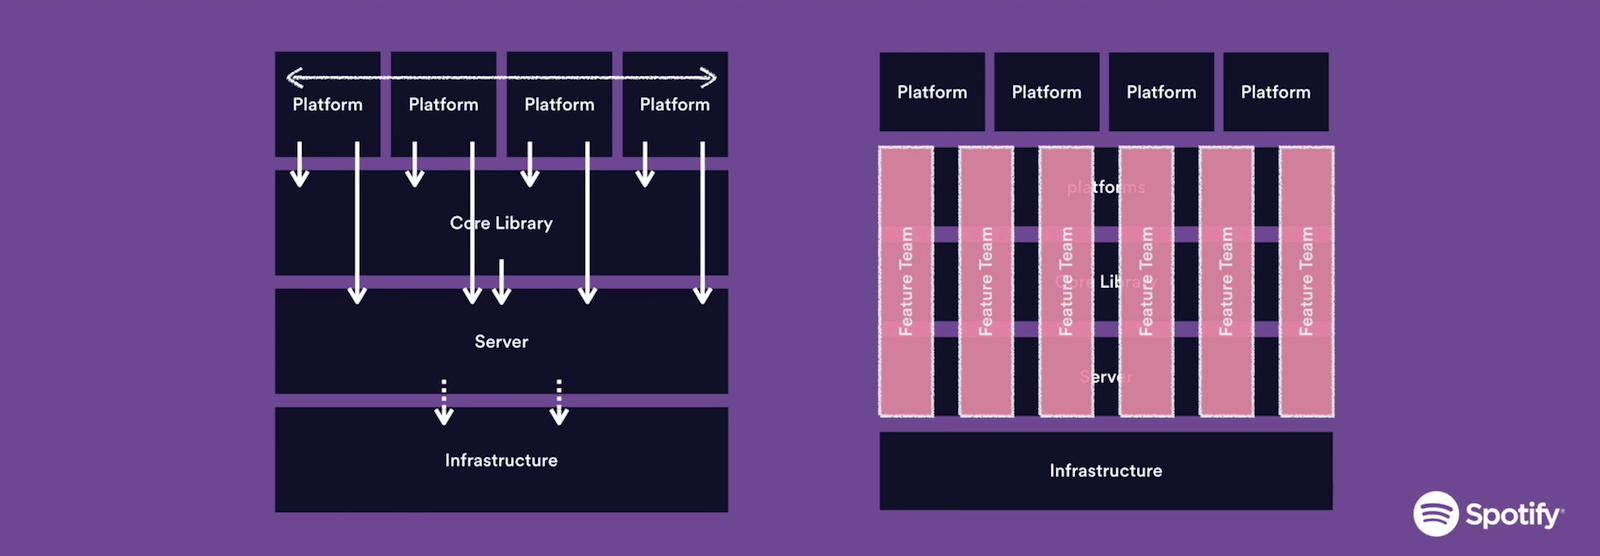 Spotify builds microservices architectures with full-stack DevOps teams